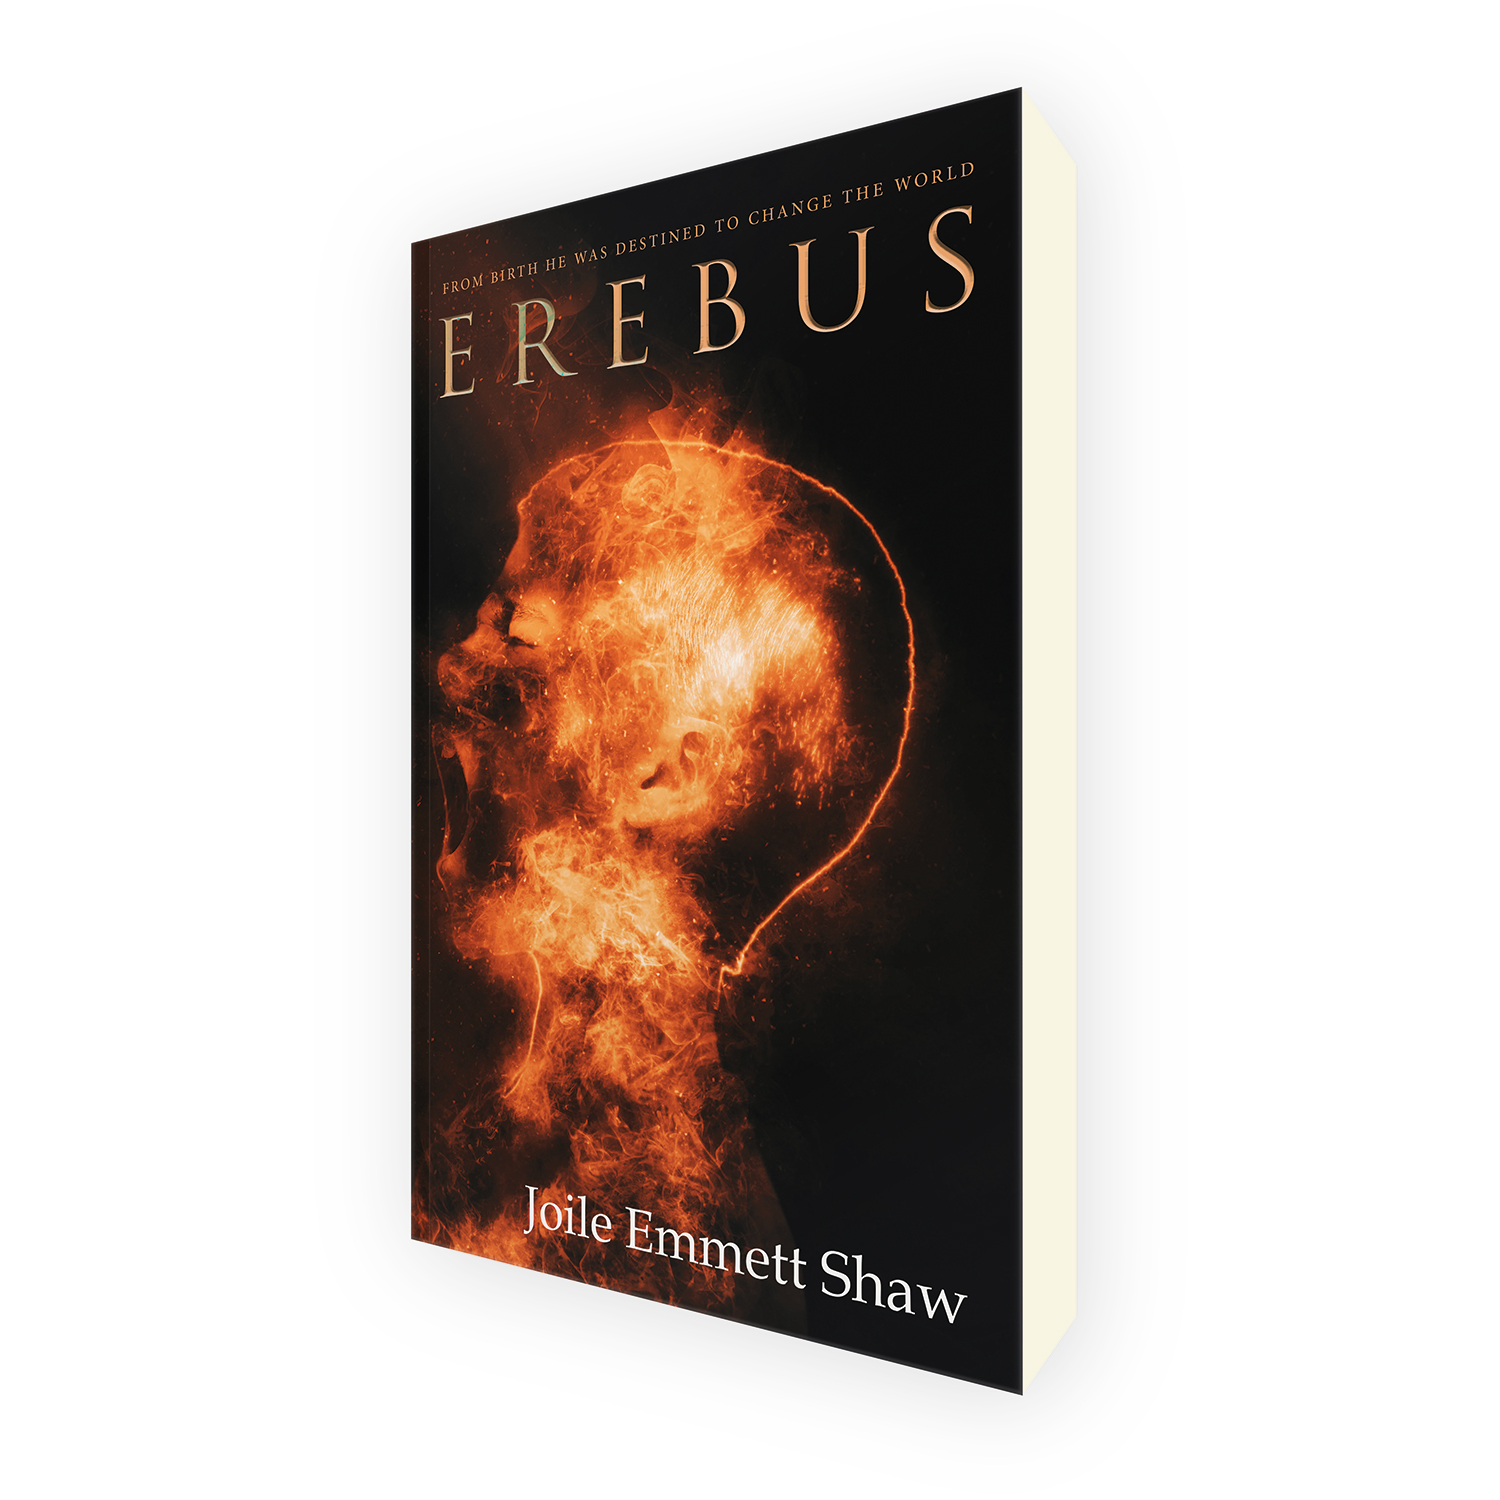 'Erebus' is a bespoke cover design for a modern horror novel. The book cover was designed by Mark Thomas, of coverness.com. To find out more about my book design services, please visit www.coverness.com.